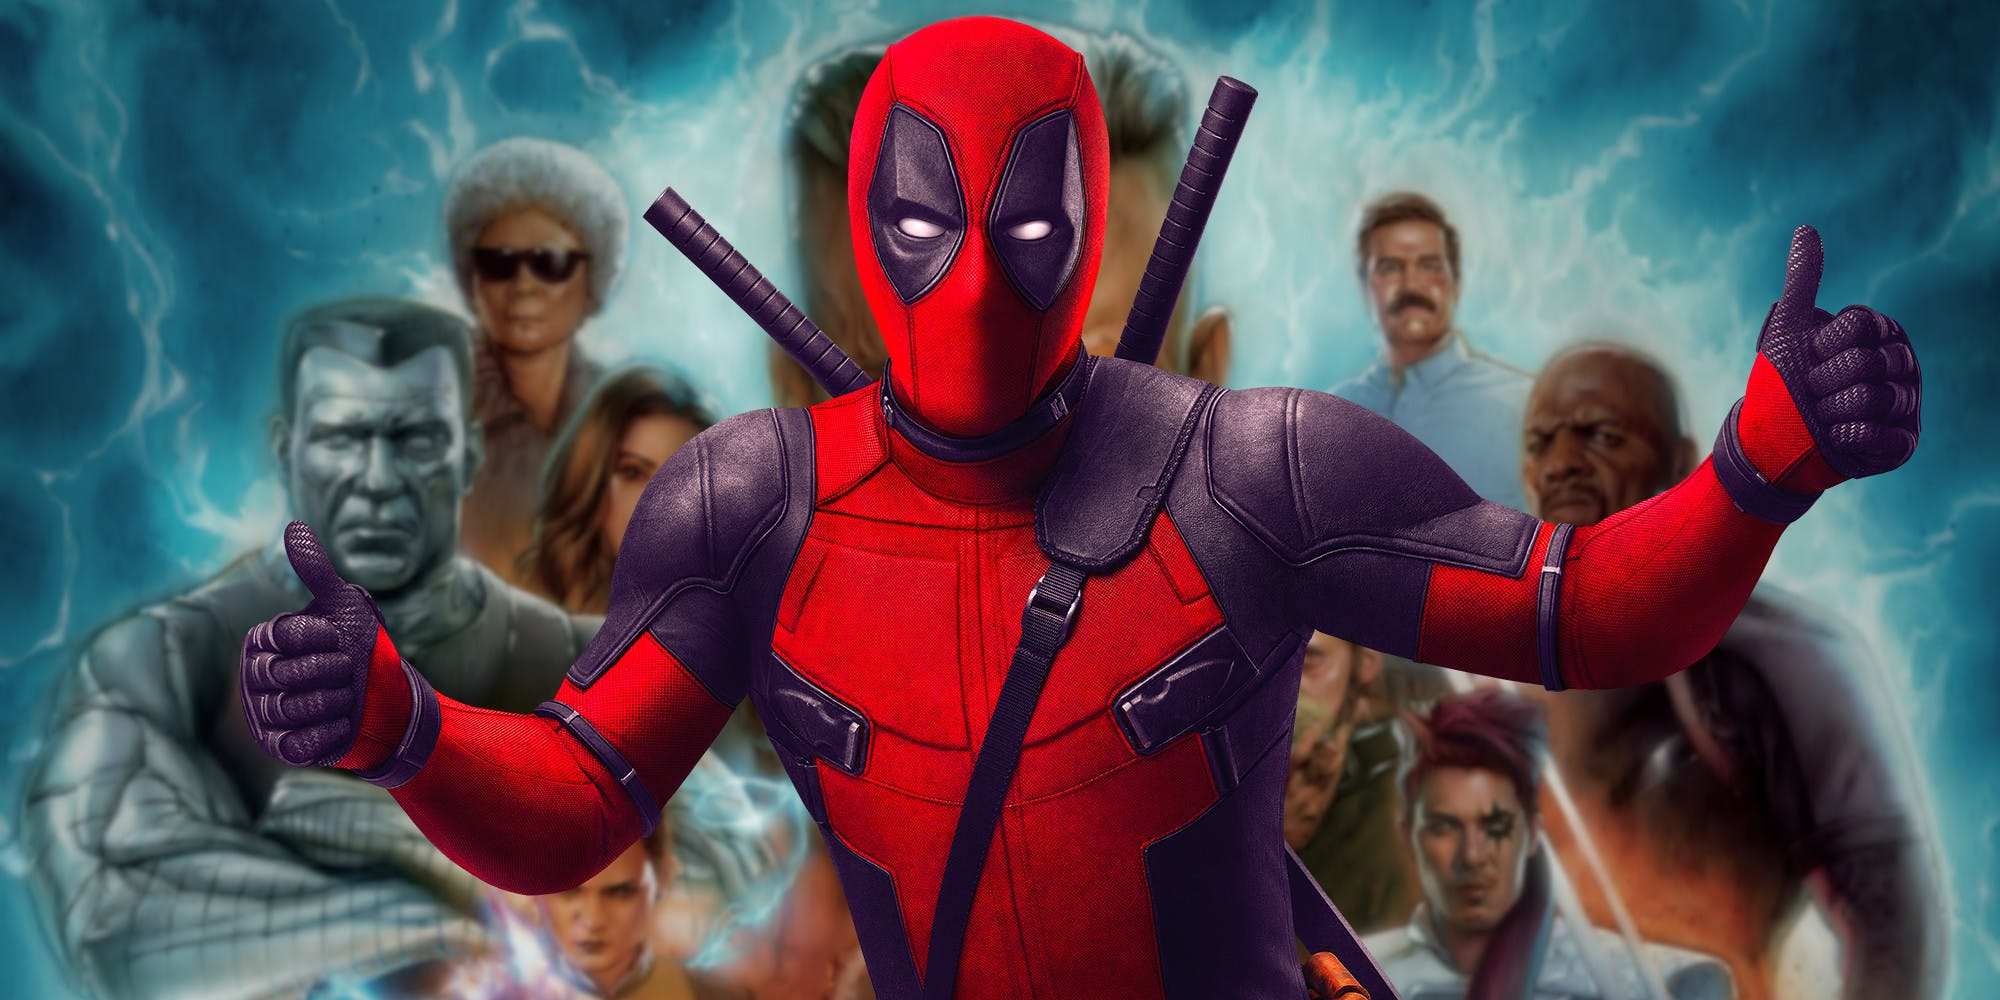 Deadpool 2 Director Says The Sequel Doesn't Have To Be R-Rated